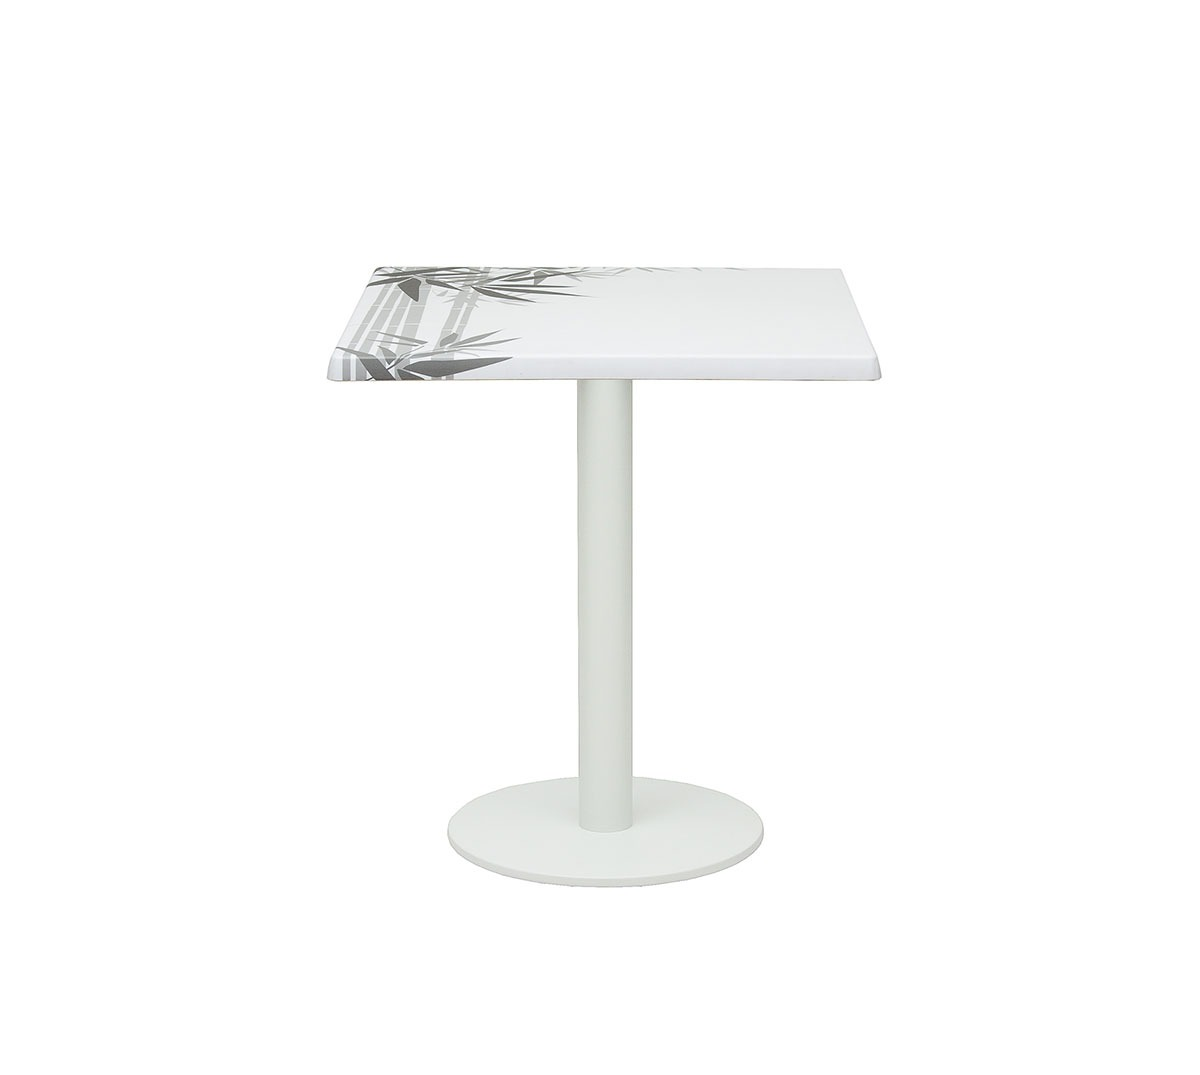 Mesa Golden a 75 aluminio color blanco texturado tablero top Caribe